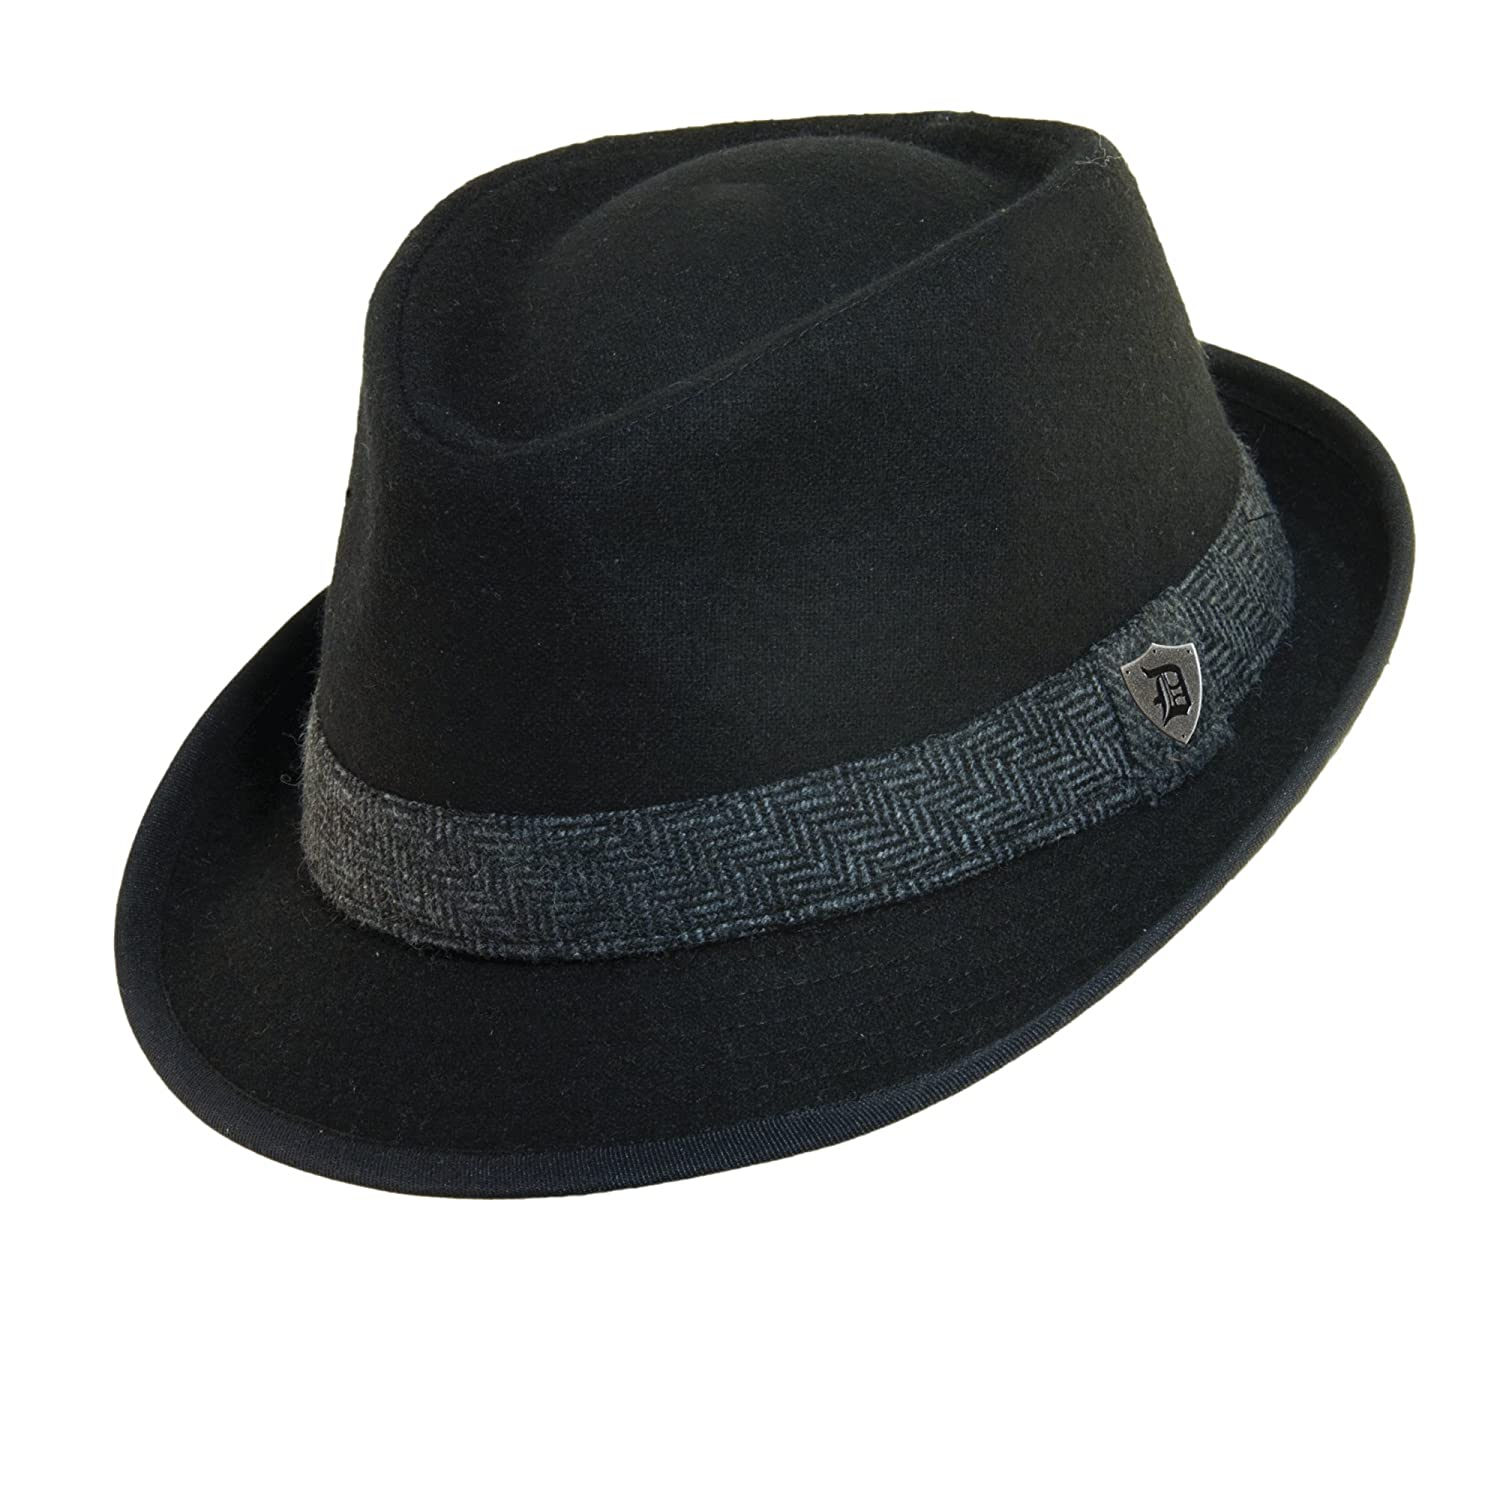 bc3246f57 Dorfman Pacific Men's Wool Herringbone Band Classic Fedora Hat at ...